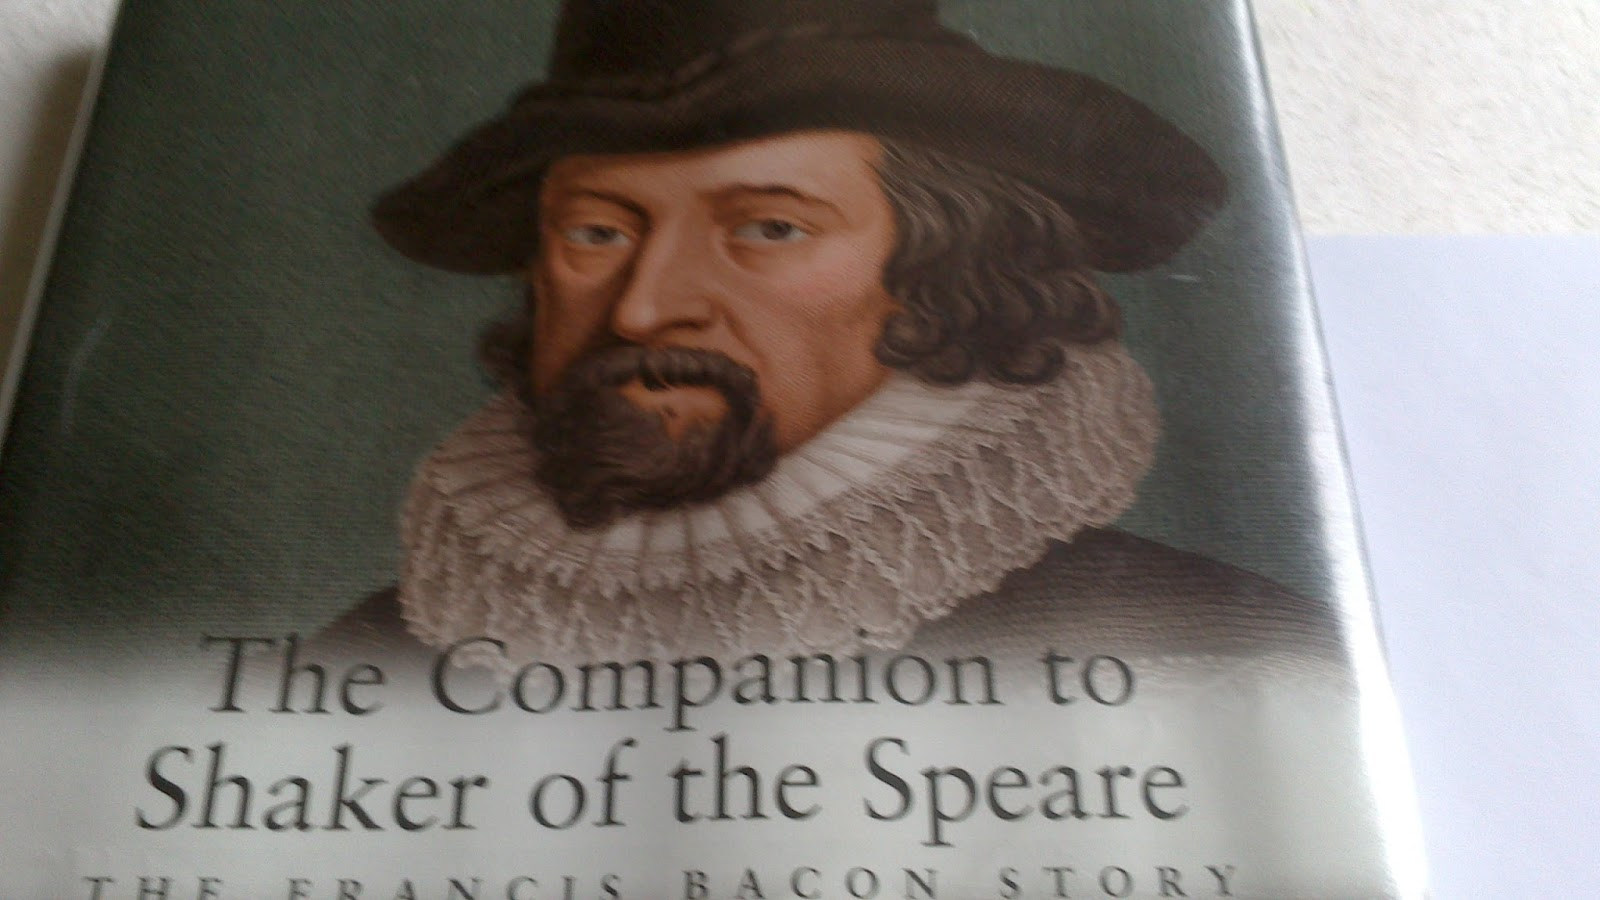 marriage and single life essay by bacon Of marriage and single life i a brief summary as we all know, francis bacon, the chief figure of the english renaissance, is a very famous as an.